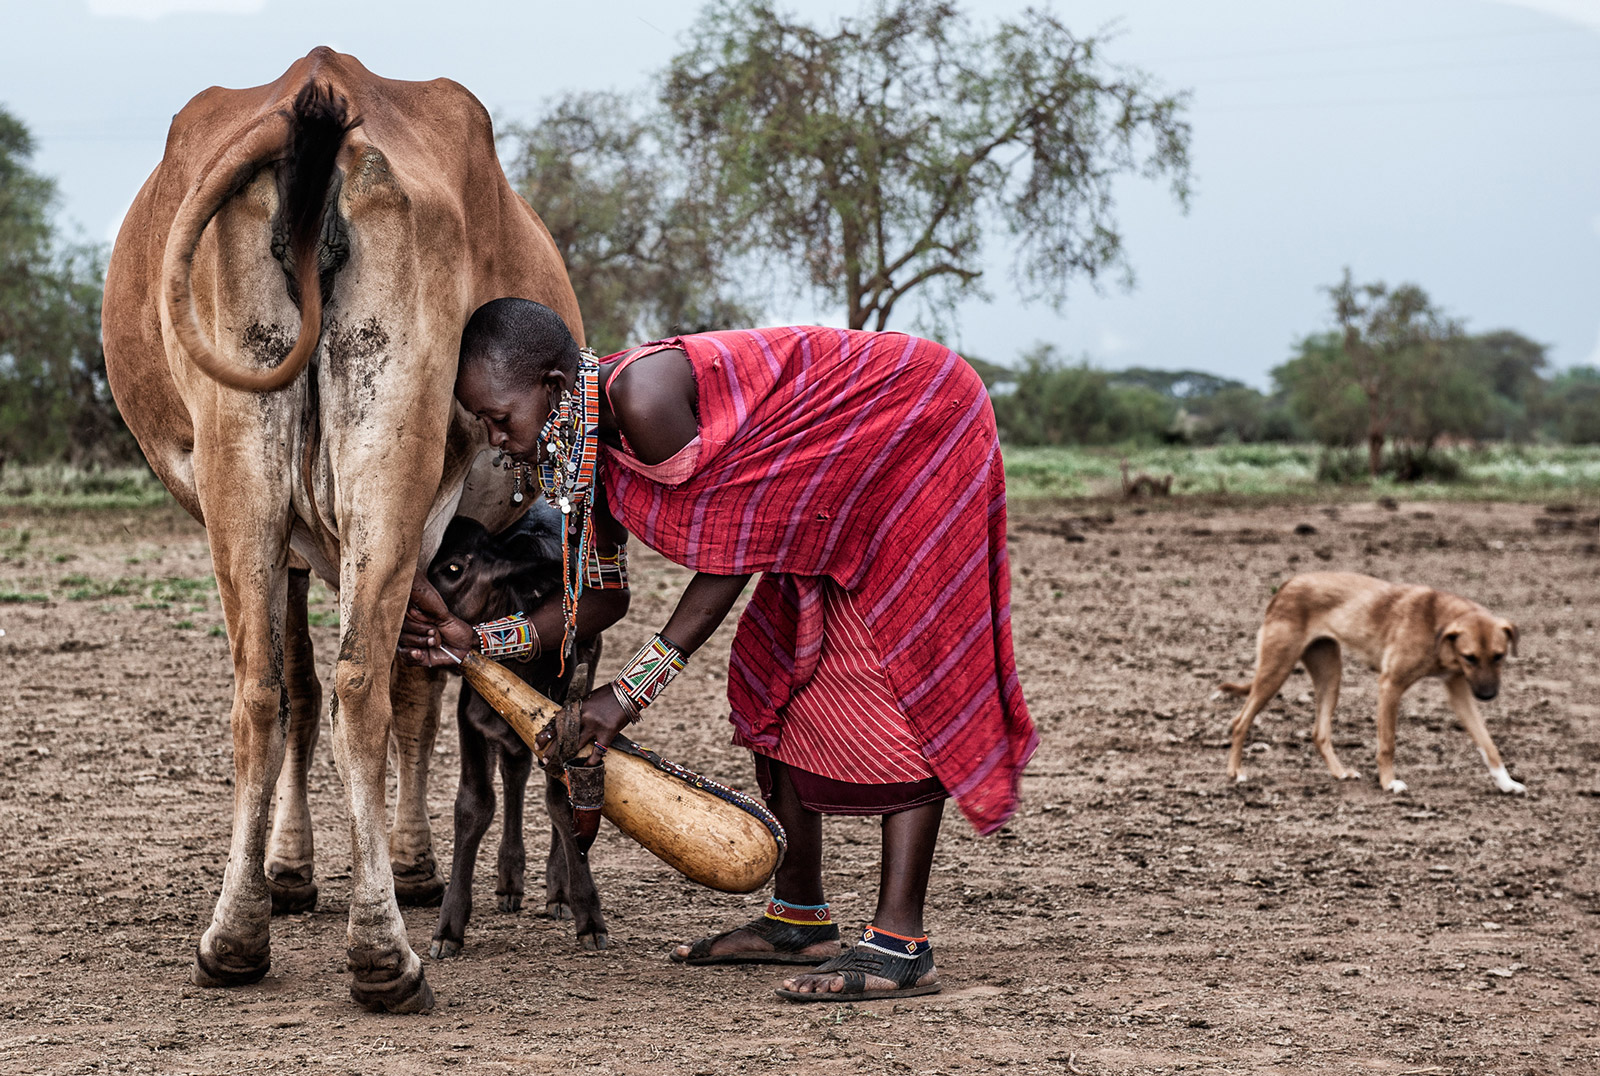 Maasai woman getting milk from the cow directly into a calabash ©Brigitta Moser